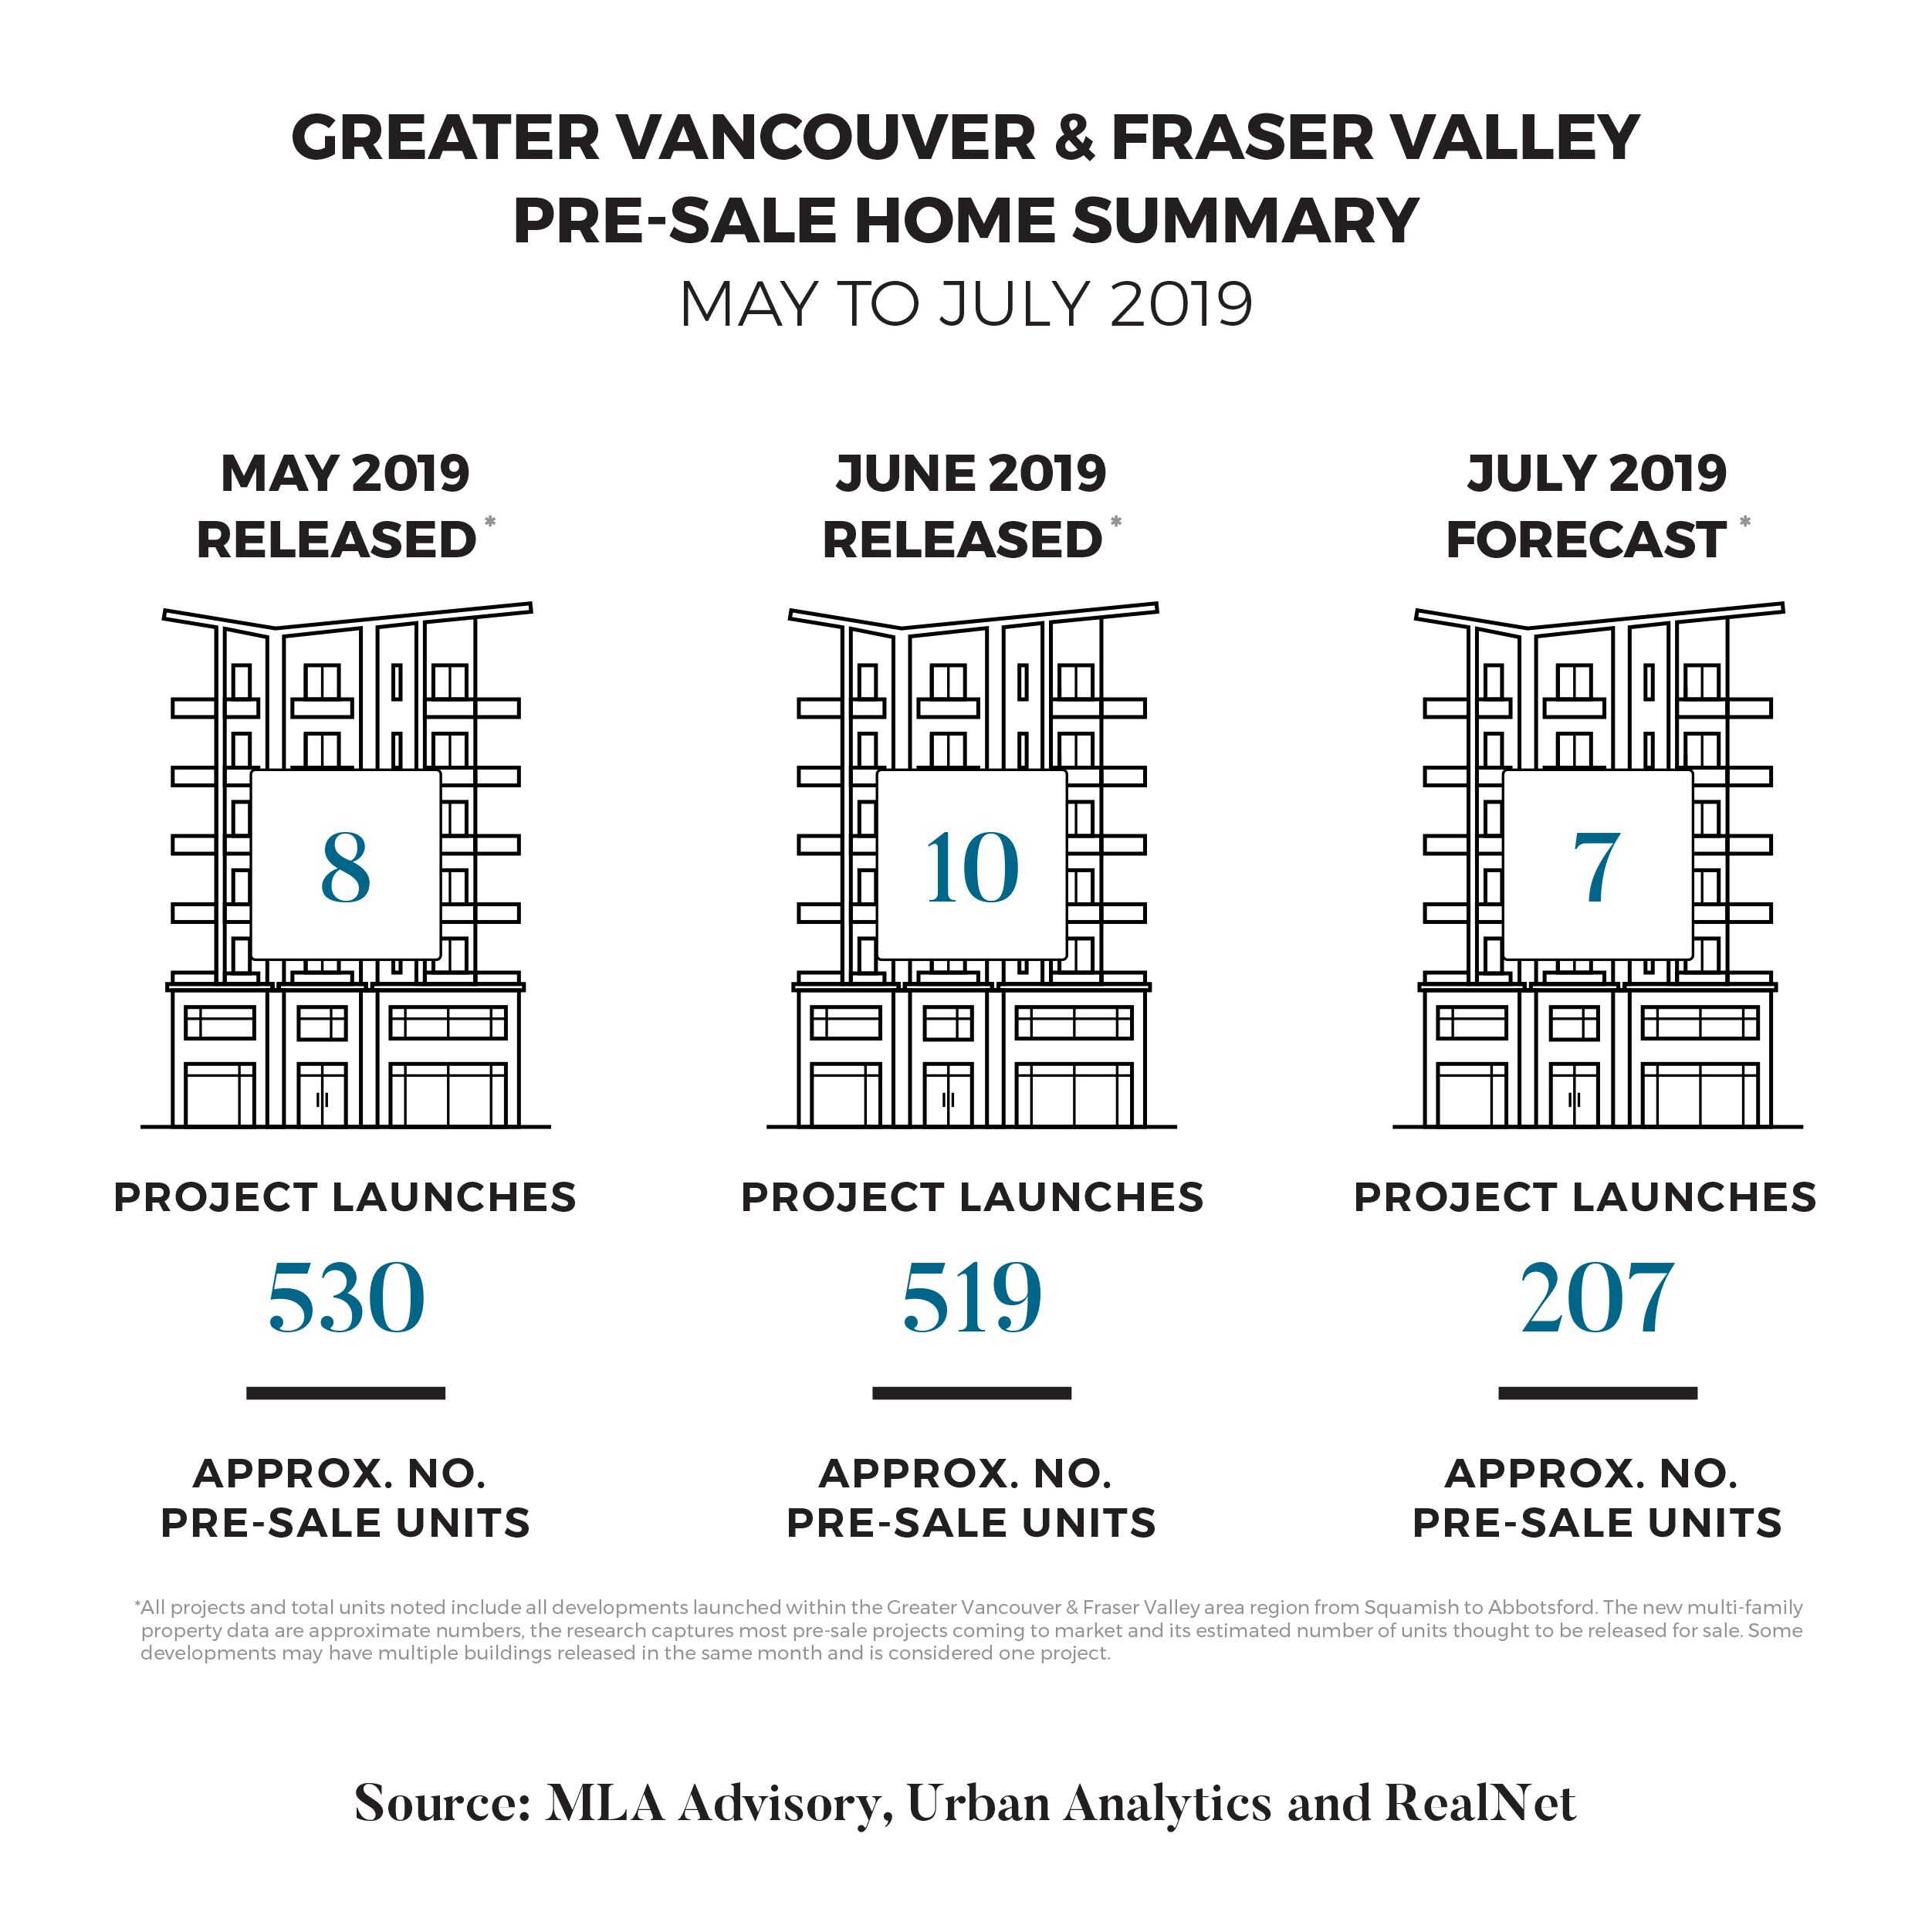 Greater Vancouver & Fraser Valley Pre-Sale Home Summary